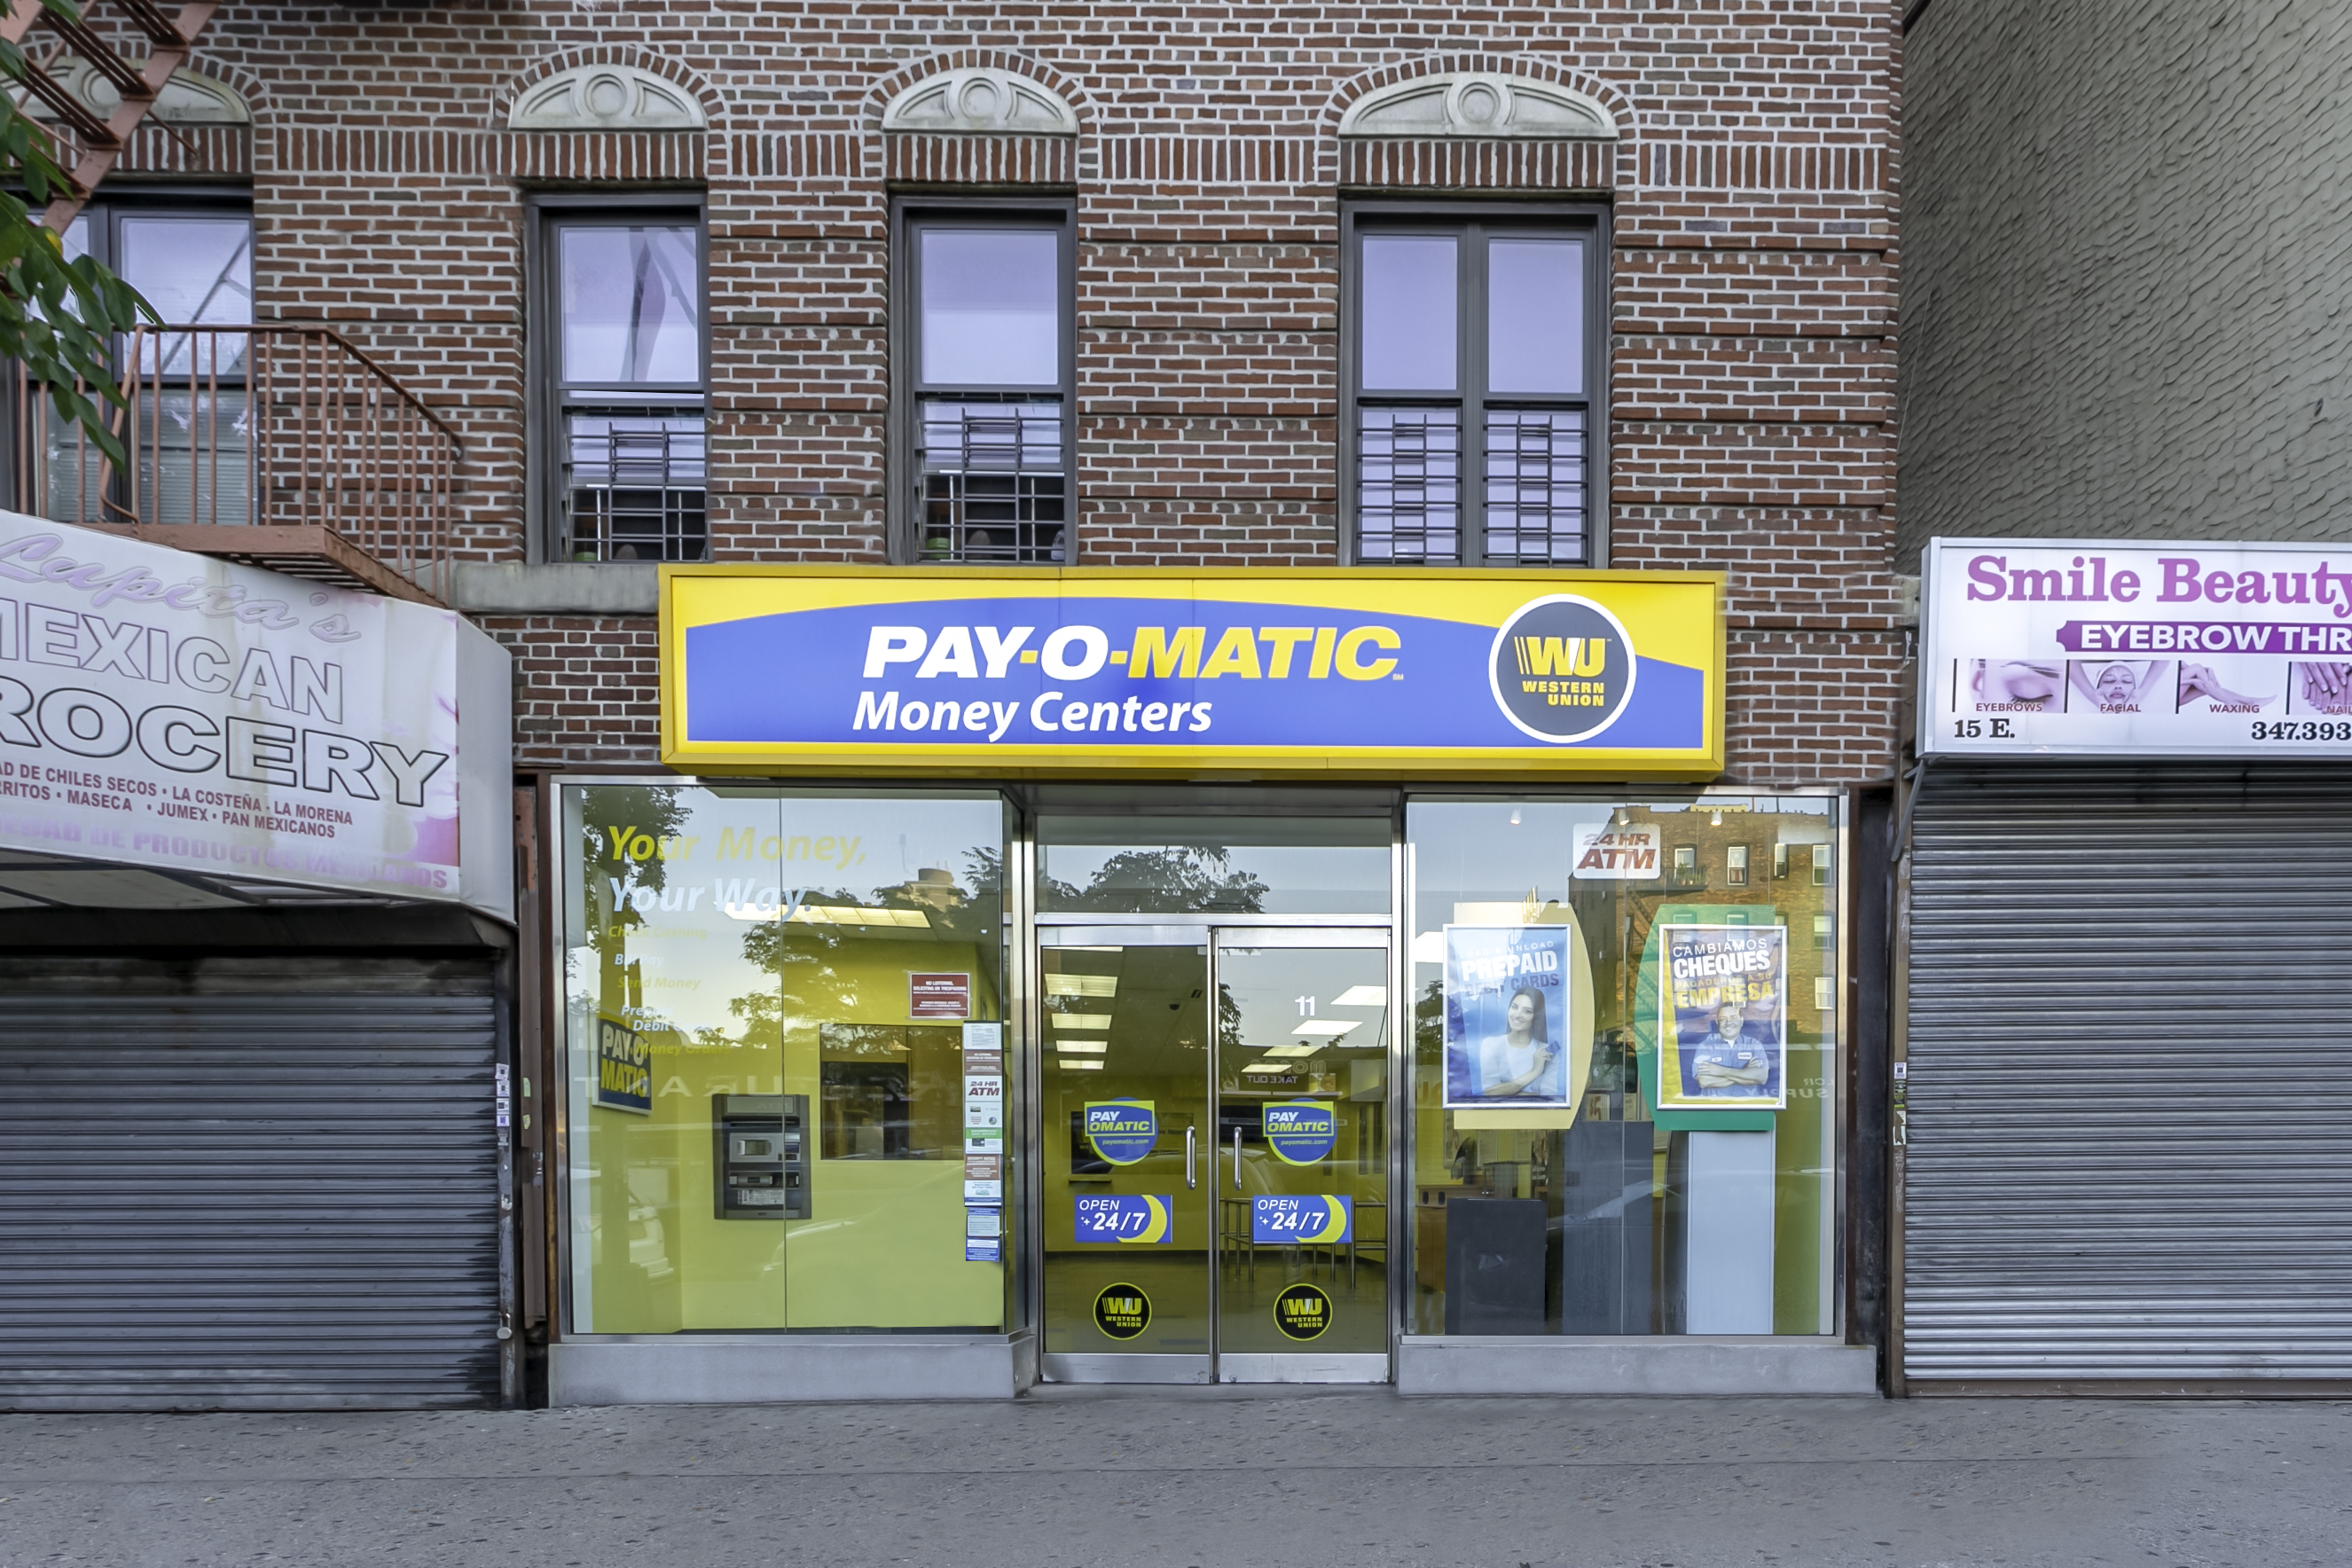 Exterior view from street of PAYOMATIC store located at 11 East Gunhill Road Bronx, NY 10467